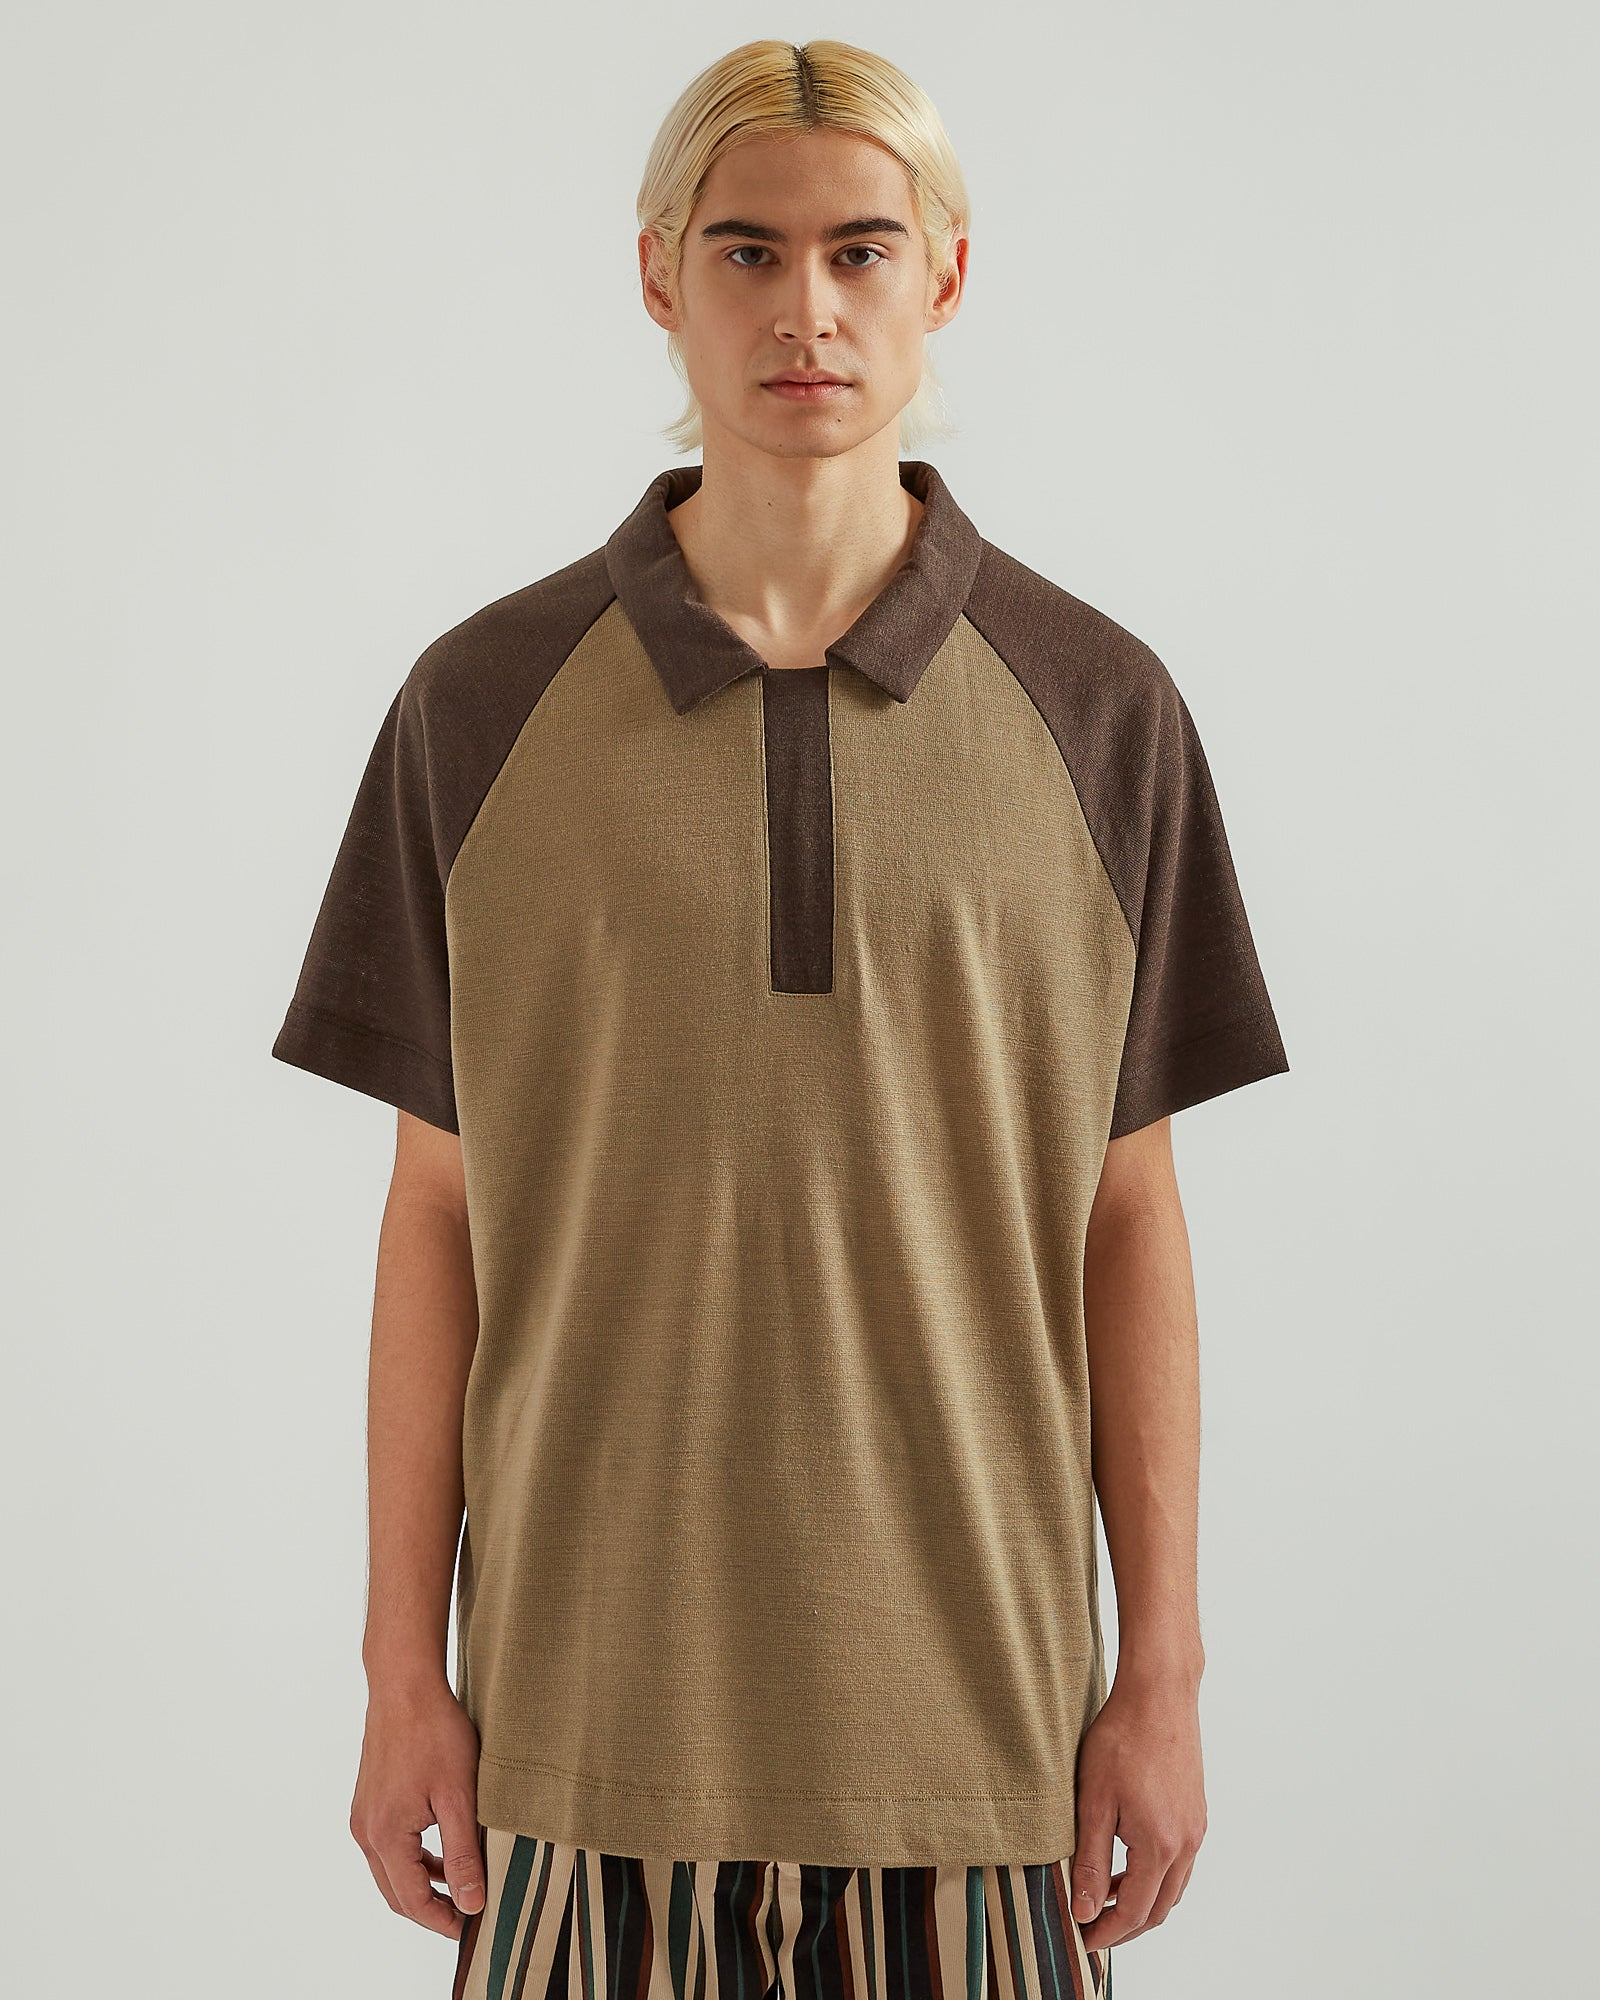 Home Away Polo in Brown/Army